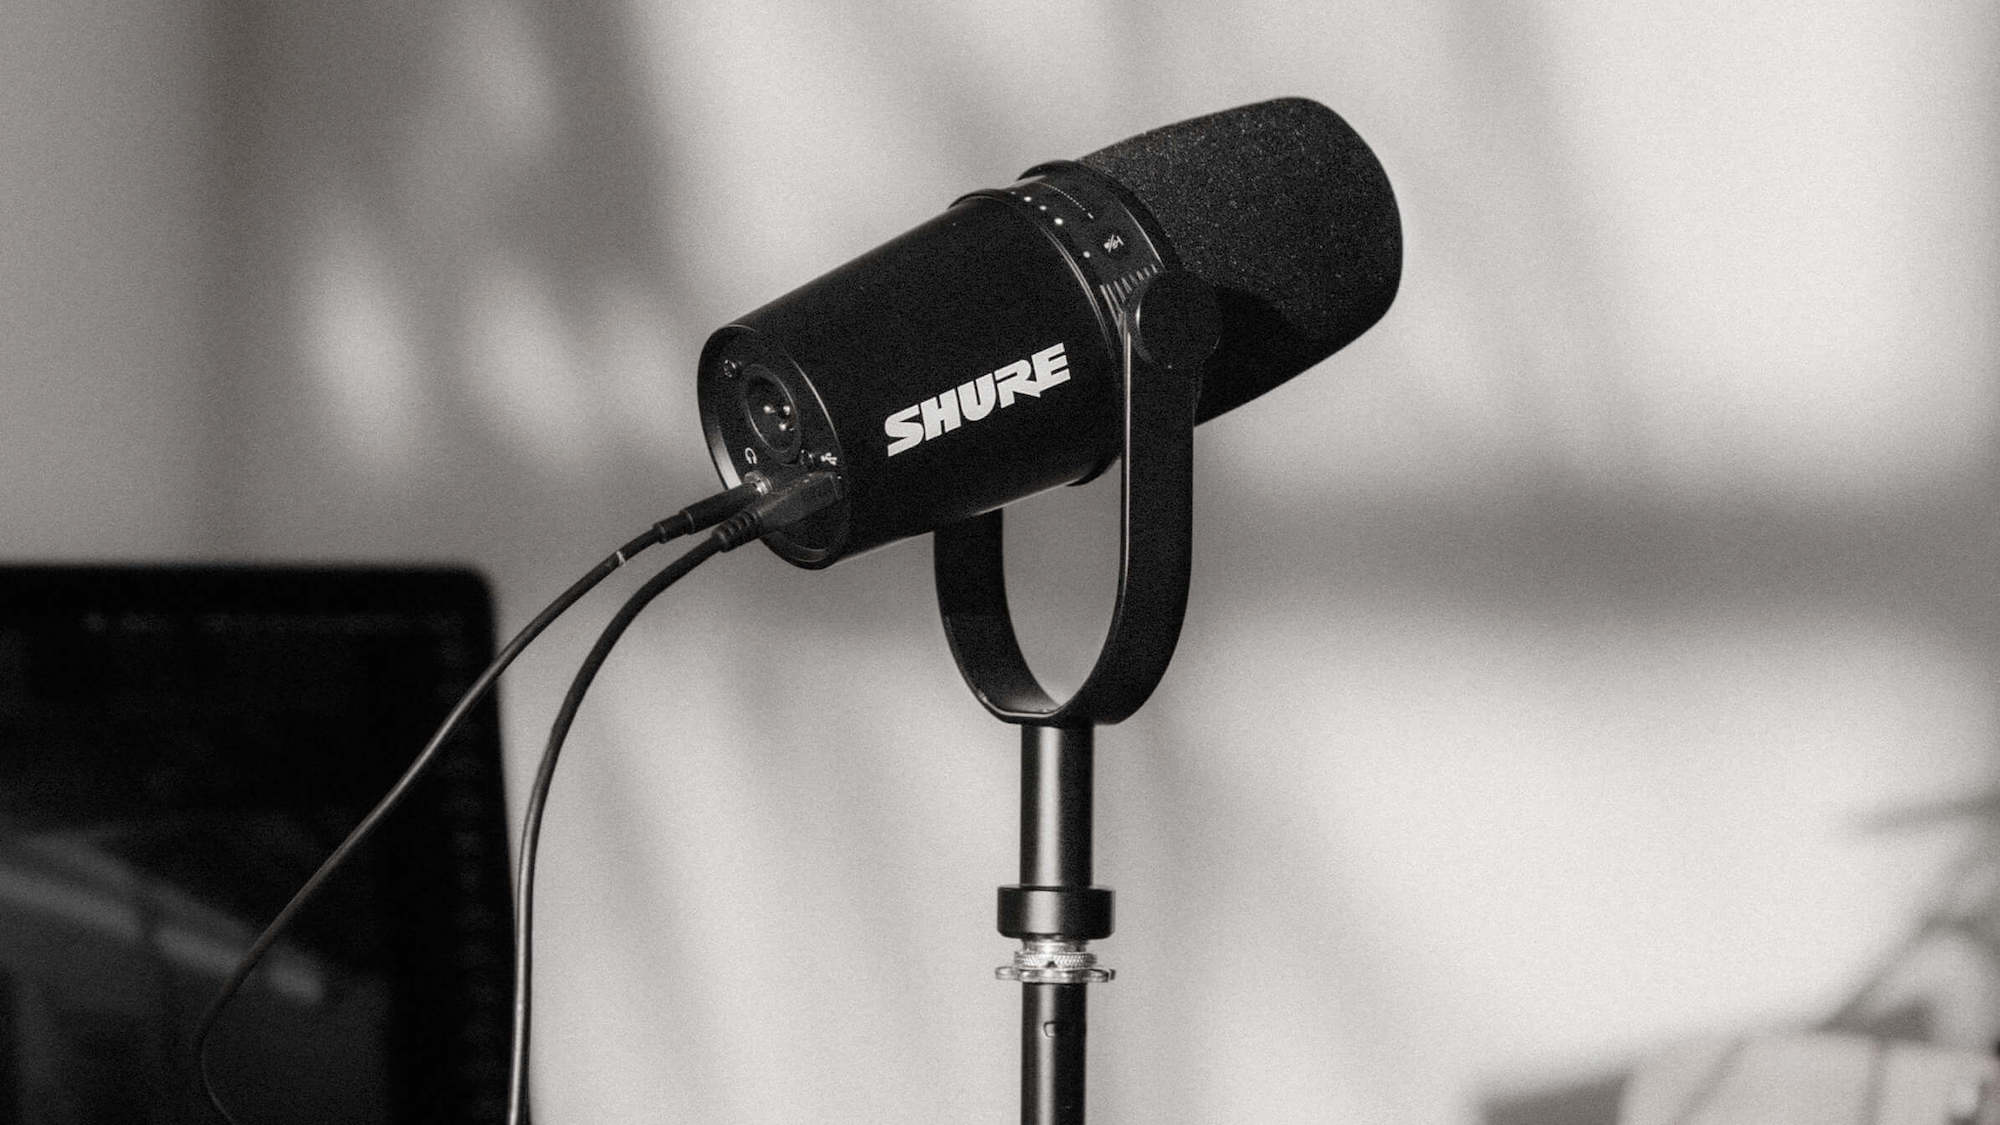 Shure MV7 dynamic podcast microphone lets you control your vocal tone & clarity on the app